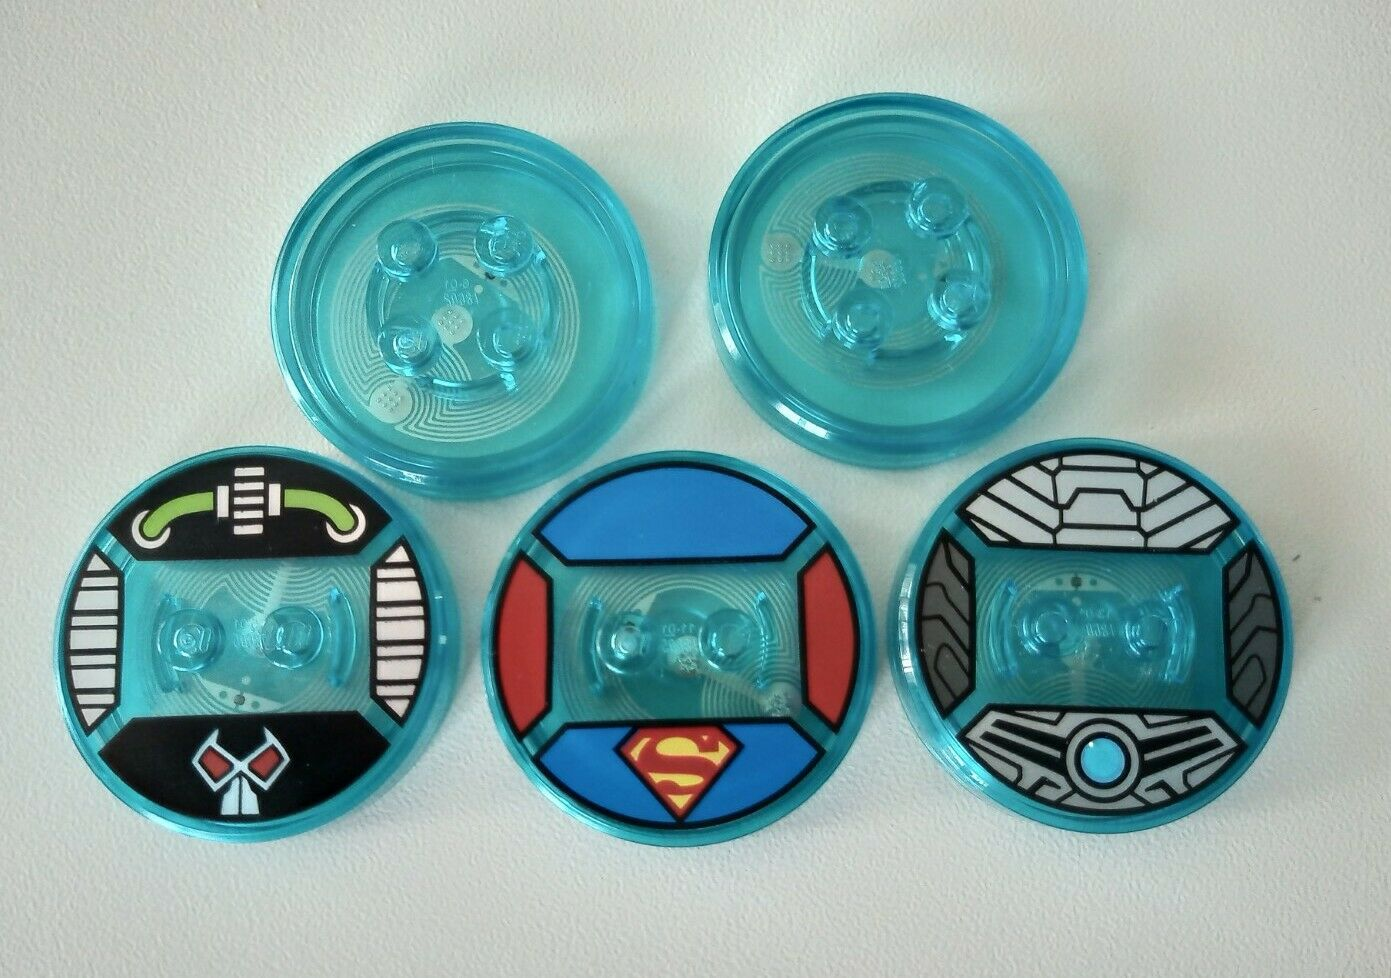 5x Lego Dimensions Toy Tags Discs including Superman Cyberman Bane & Blue Blanks